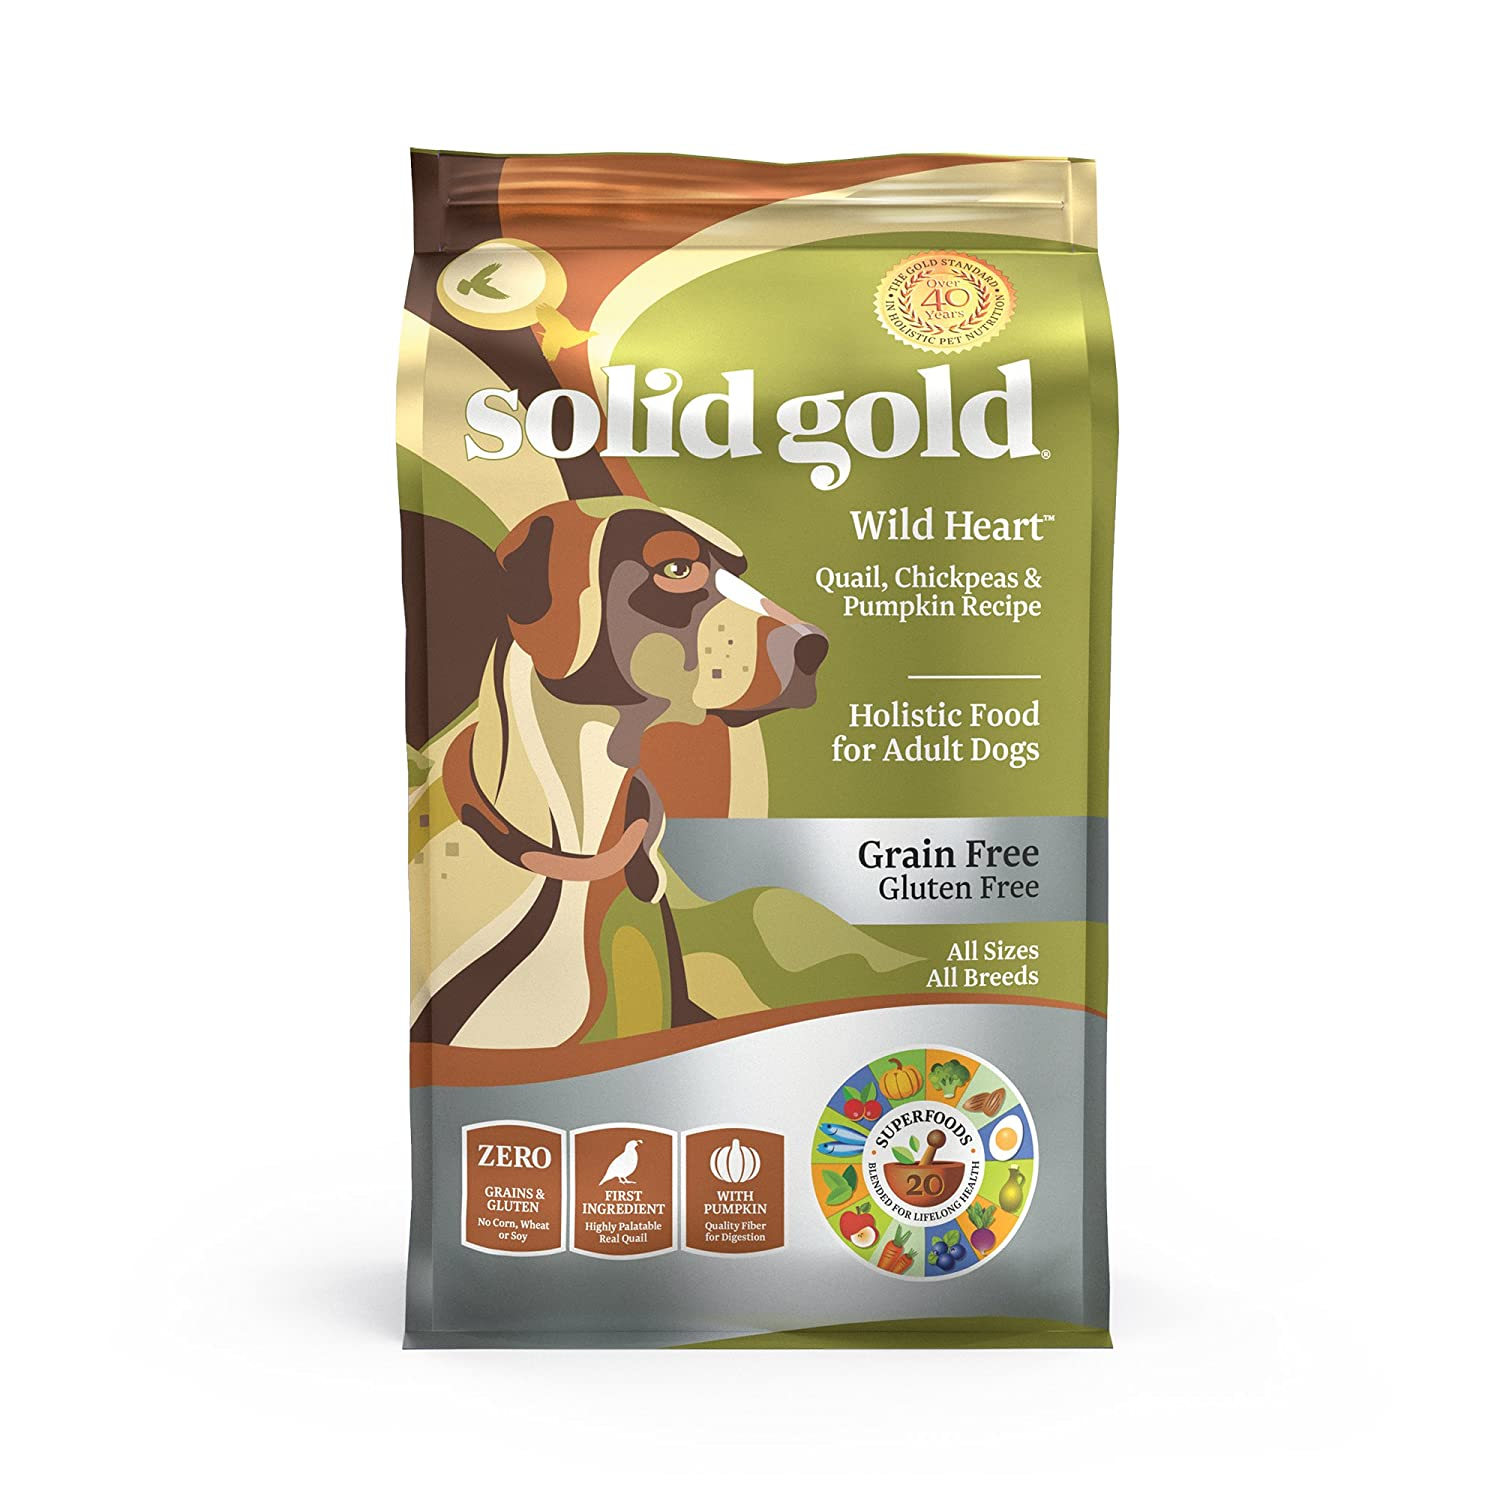 Solid Gold – Wild Heart – Natural Quail, Chickpea Pumpkin – Grain-free Gluten-free – Fiber Rich with Probiotics – Holistic Food For Adult Dogs